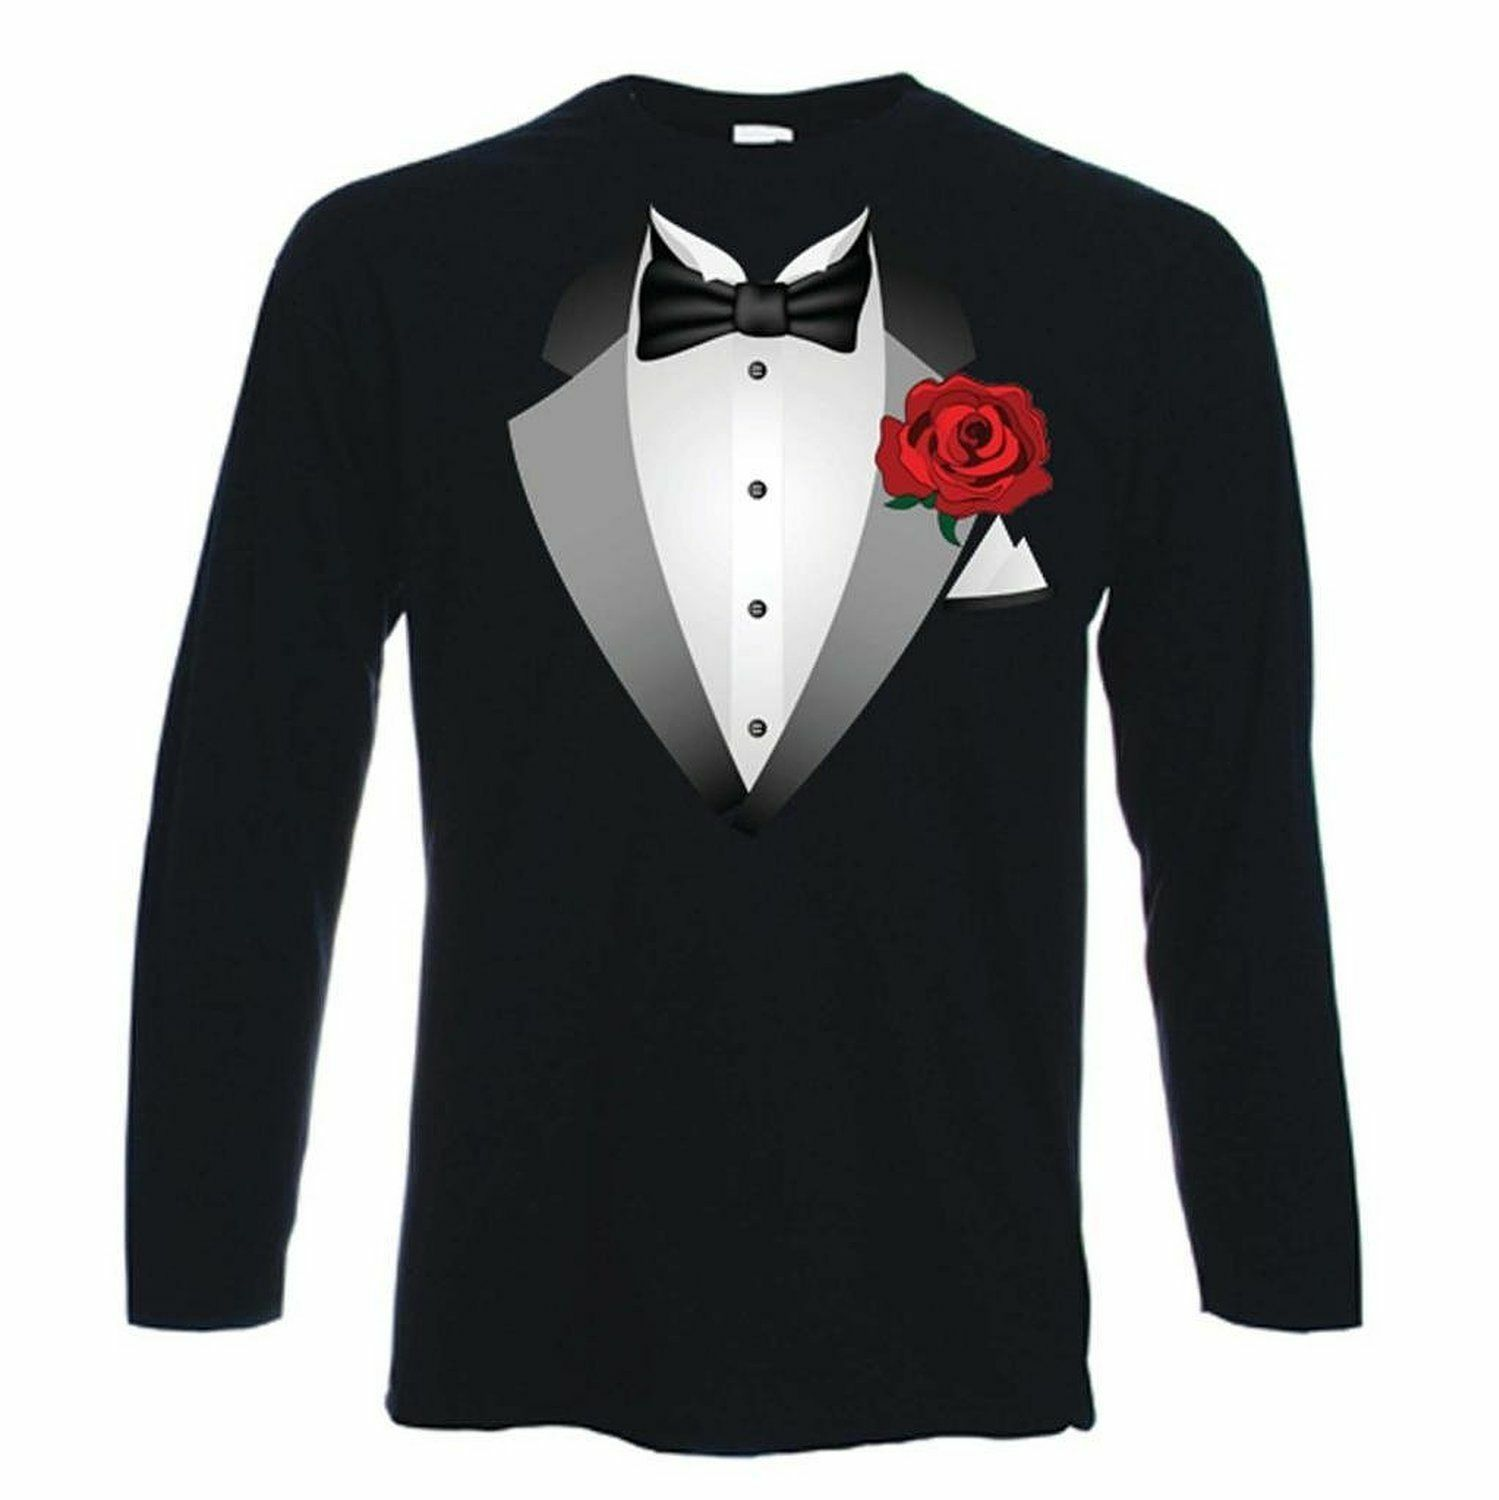 Toddler tuxedo t-shirts, baby tux onesies, and if your bambino is a little bigger, we also have kids' tuxedo t-shirts. These are easy to put on, even on the most hyperactive kids and machine washable, so you don't have to stress out about spills or stains.